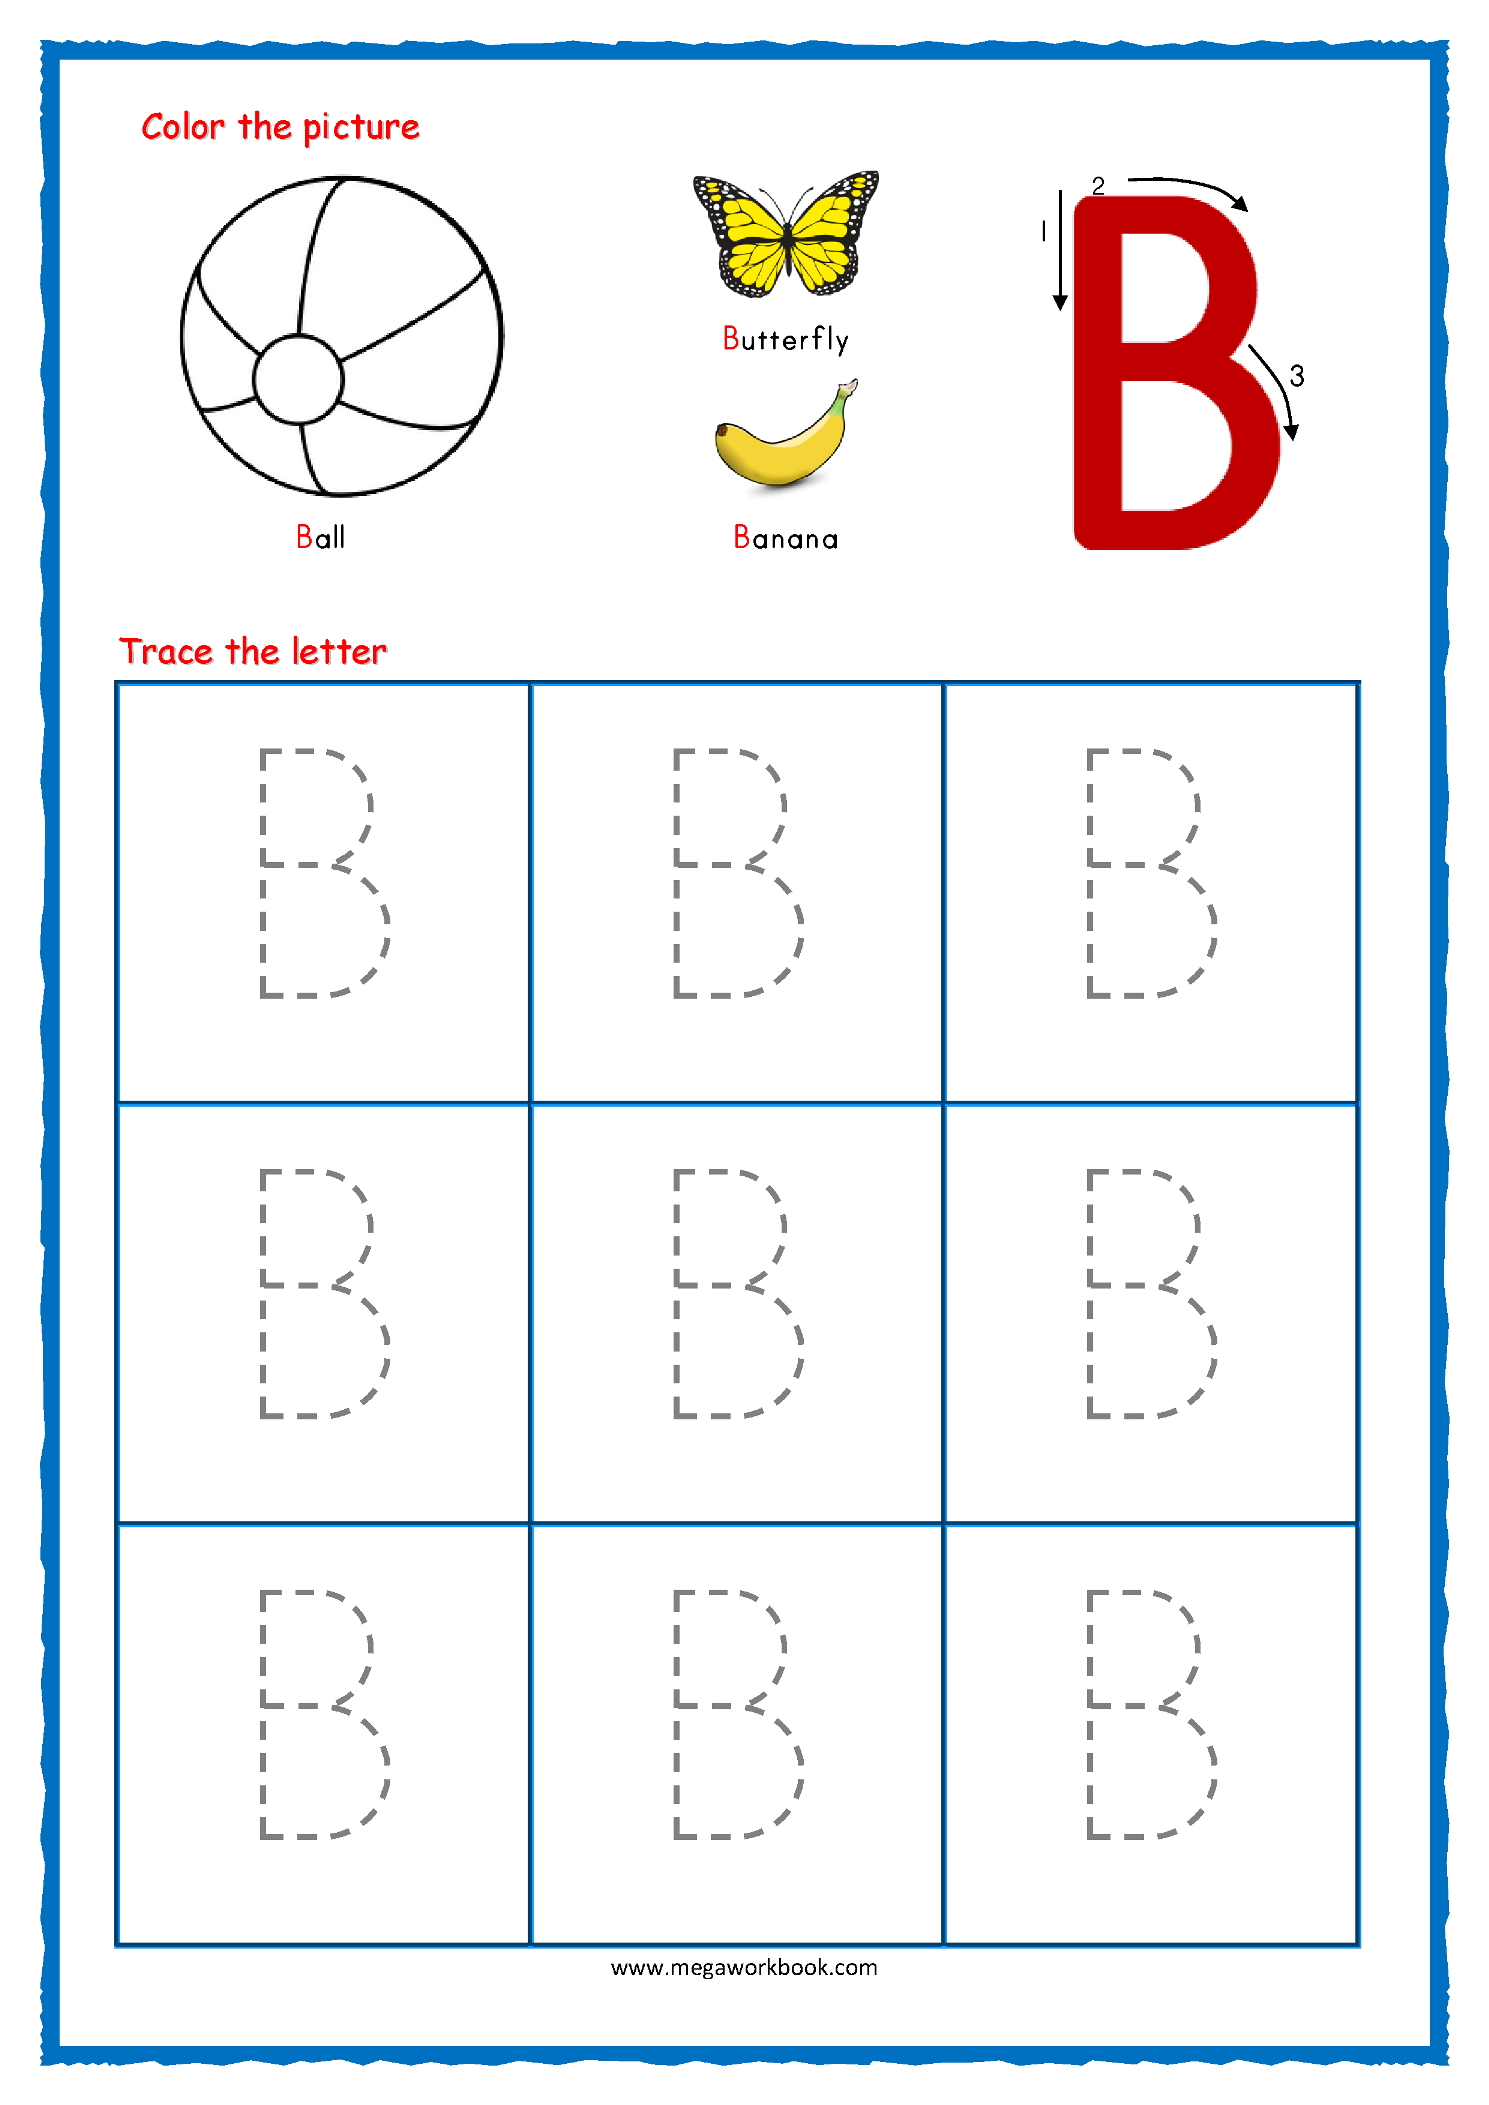 Tracing Letters - Alphabet Tracing - Capital Letters for Alphabet Letter Trace